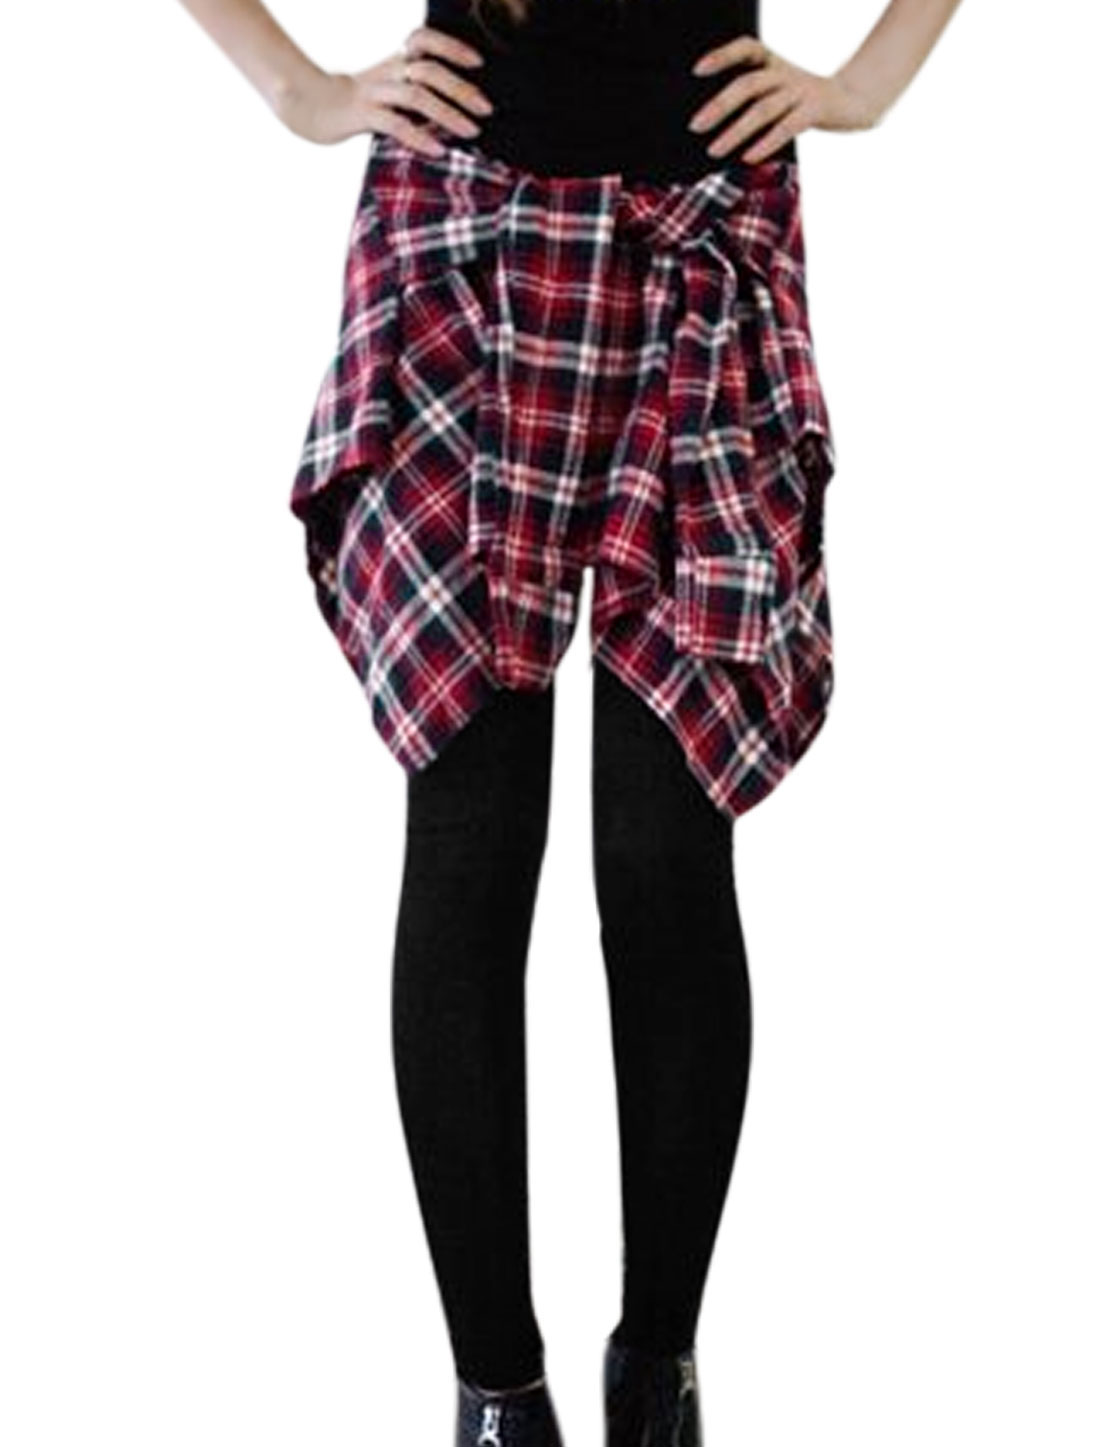 Women Checks Pattern Stretchy Waist Casual Skorts Pants Black Burgundy XS